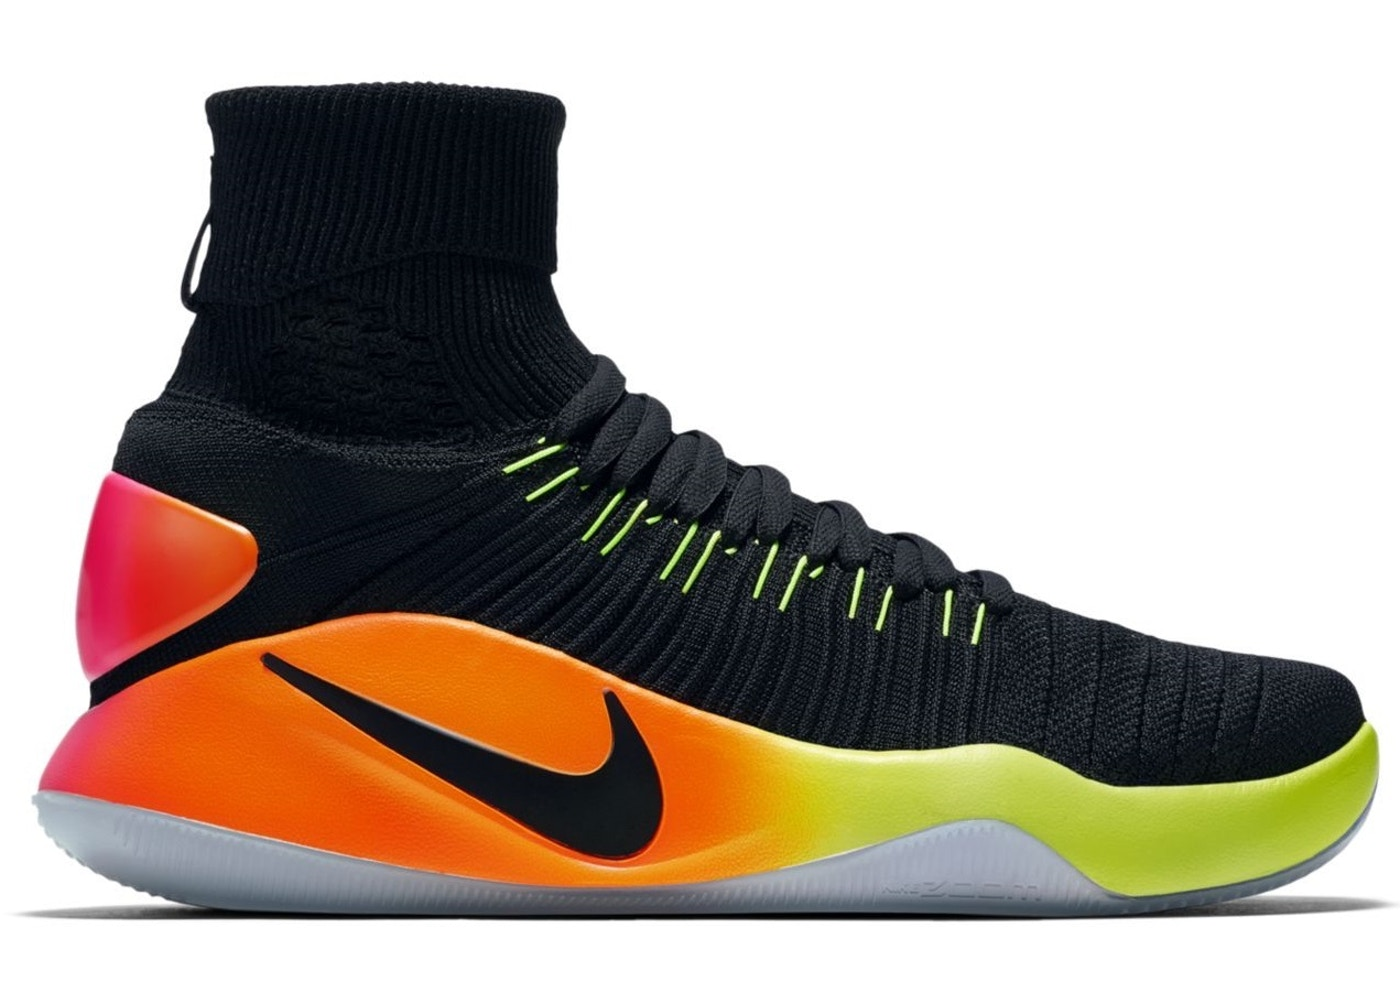 purchase cheap 973f9 0f1e8 Buy Nike Basketball Hyperdunk Shoes   Deadstock Sneakers